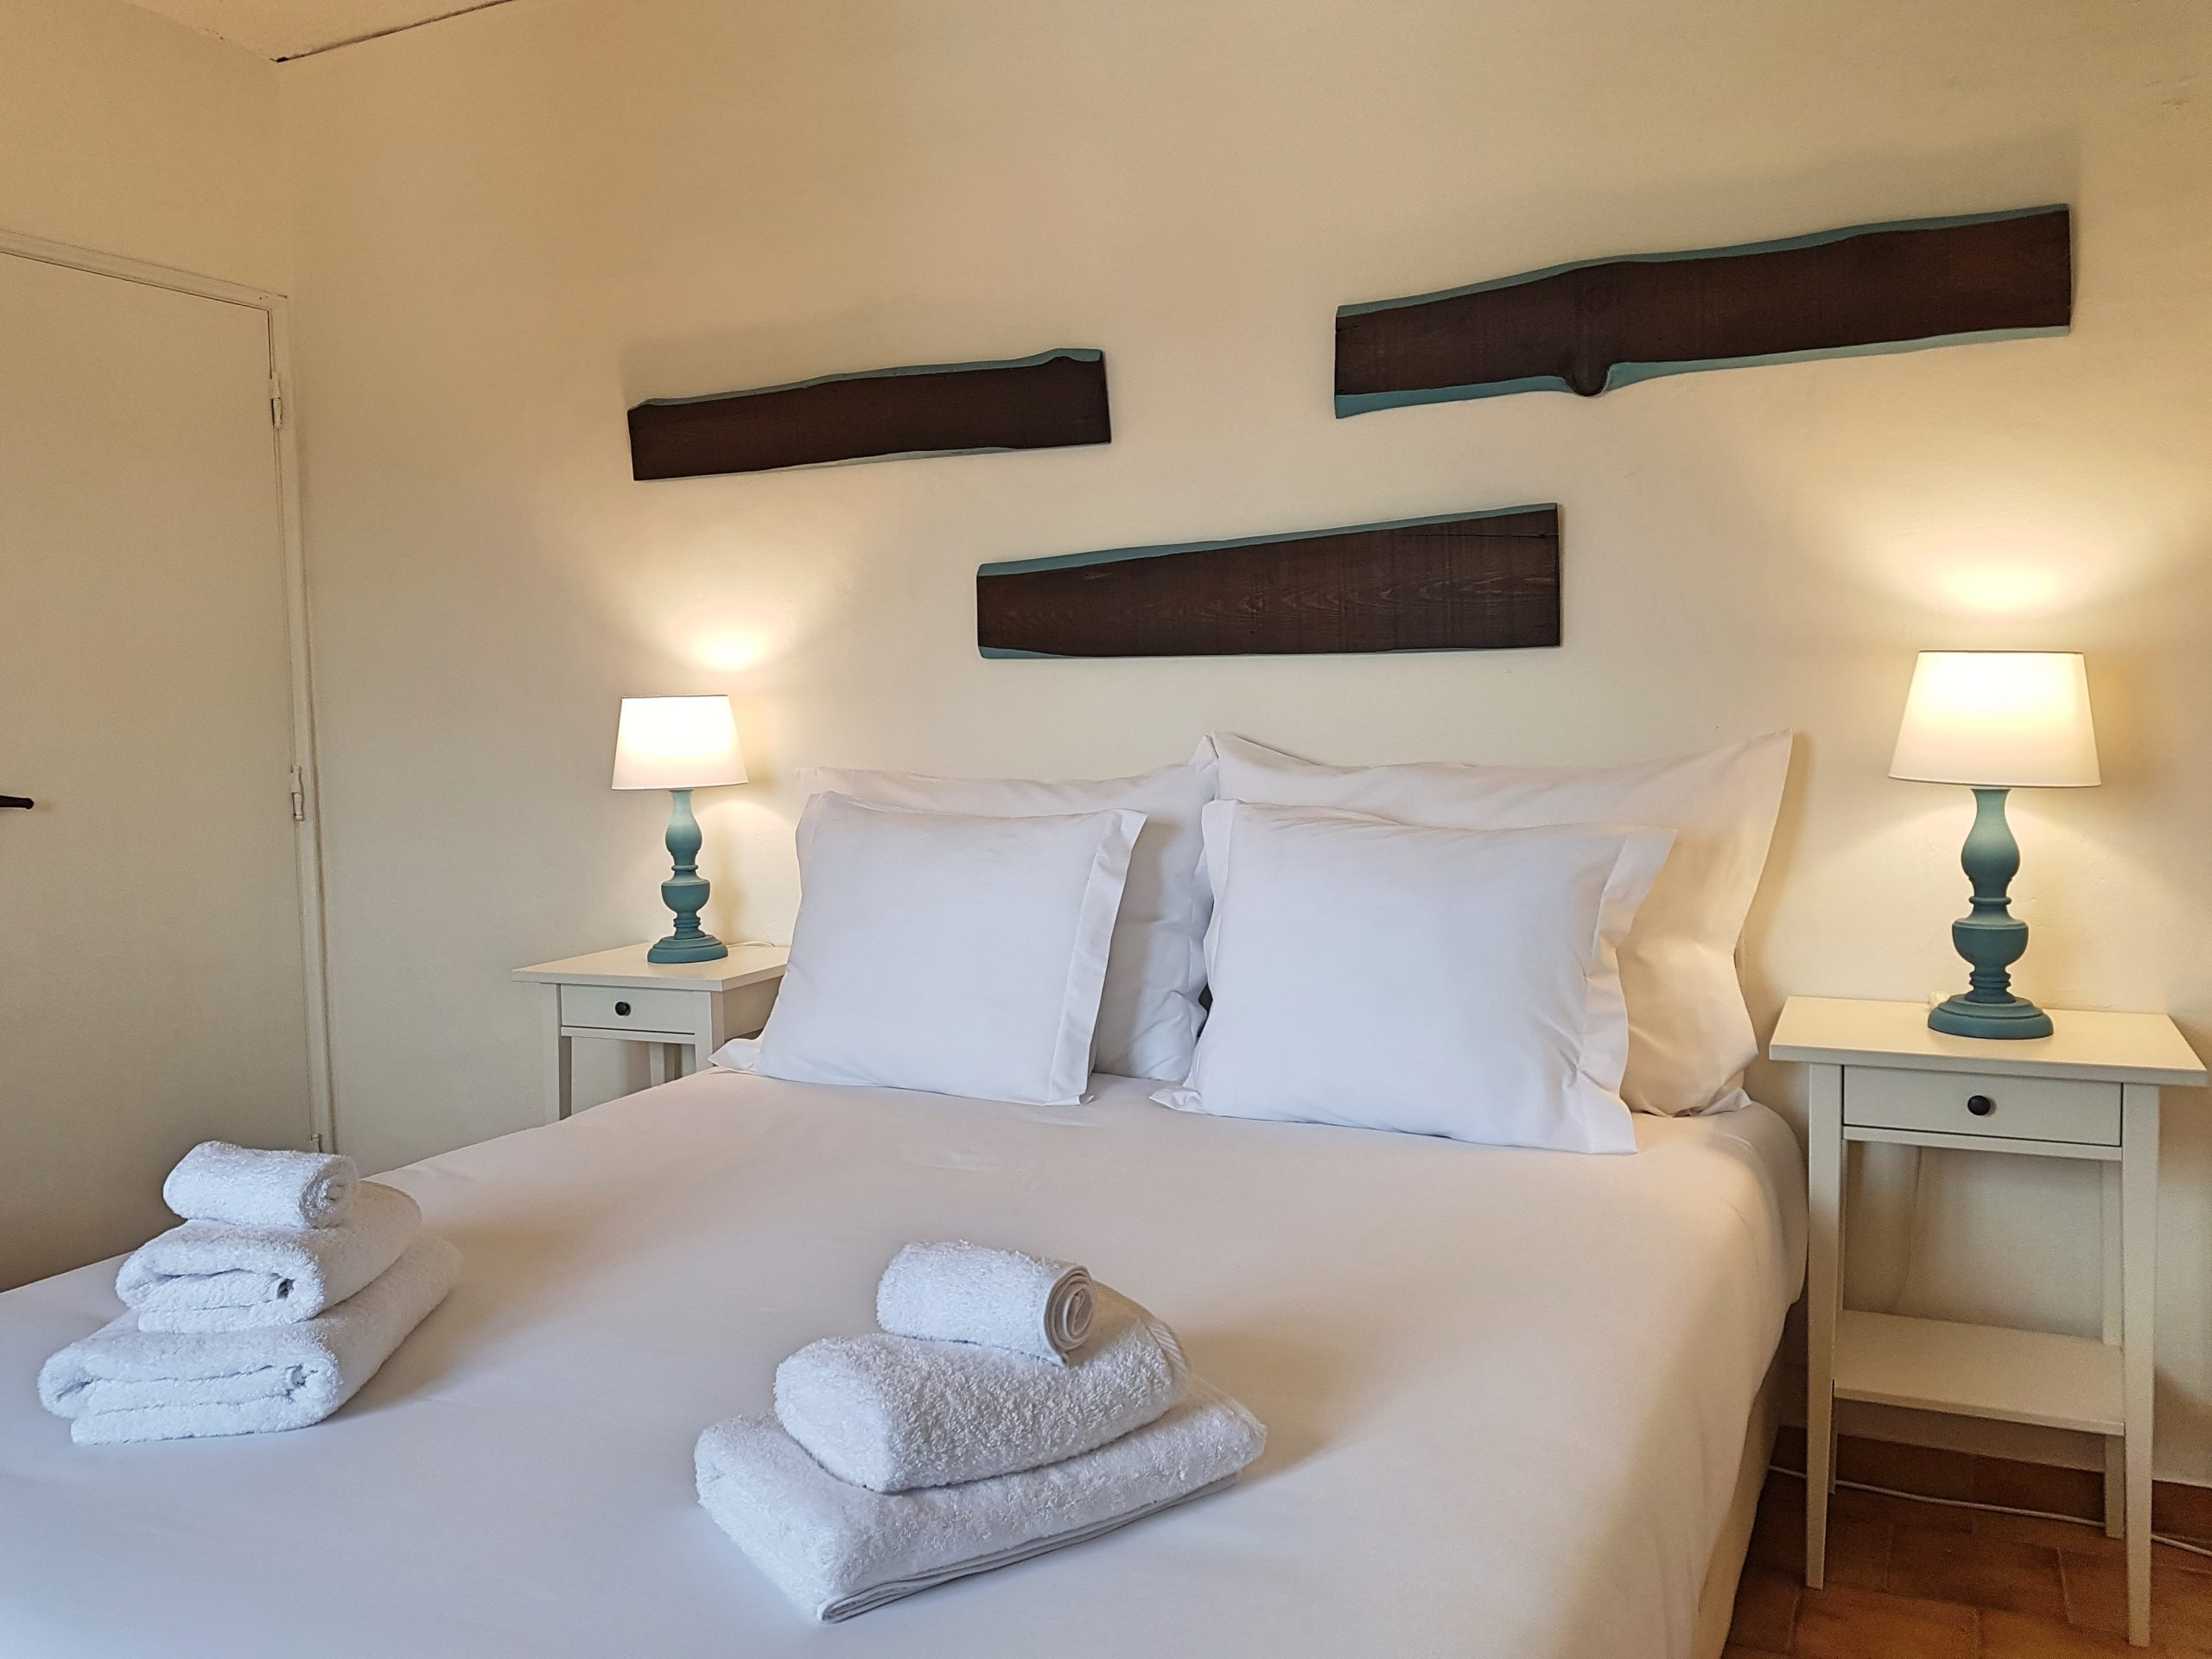 Most of our rooms have two beds, with a choice of setup as a double, so one bed of 180 x 200 or as 2 singles of 90 x 200. However, in 2 of our comforts, the family suite and the studio apartment, we have a double bed of 160 x 200.